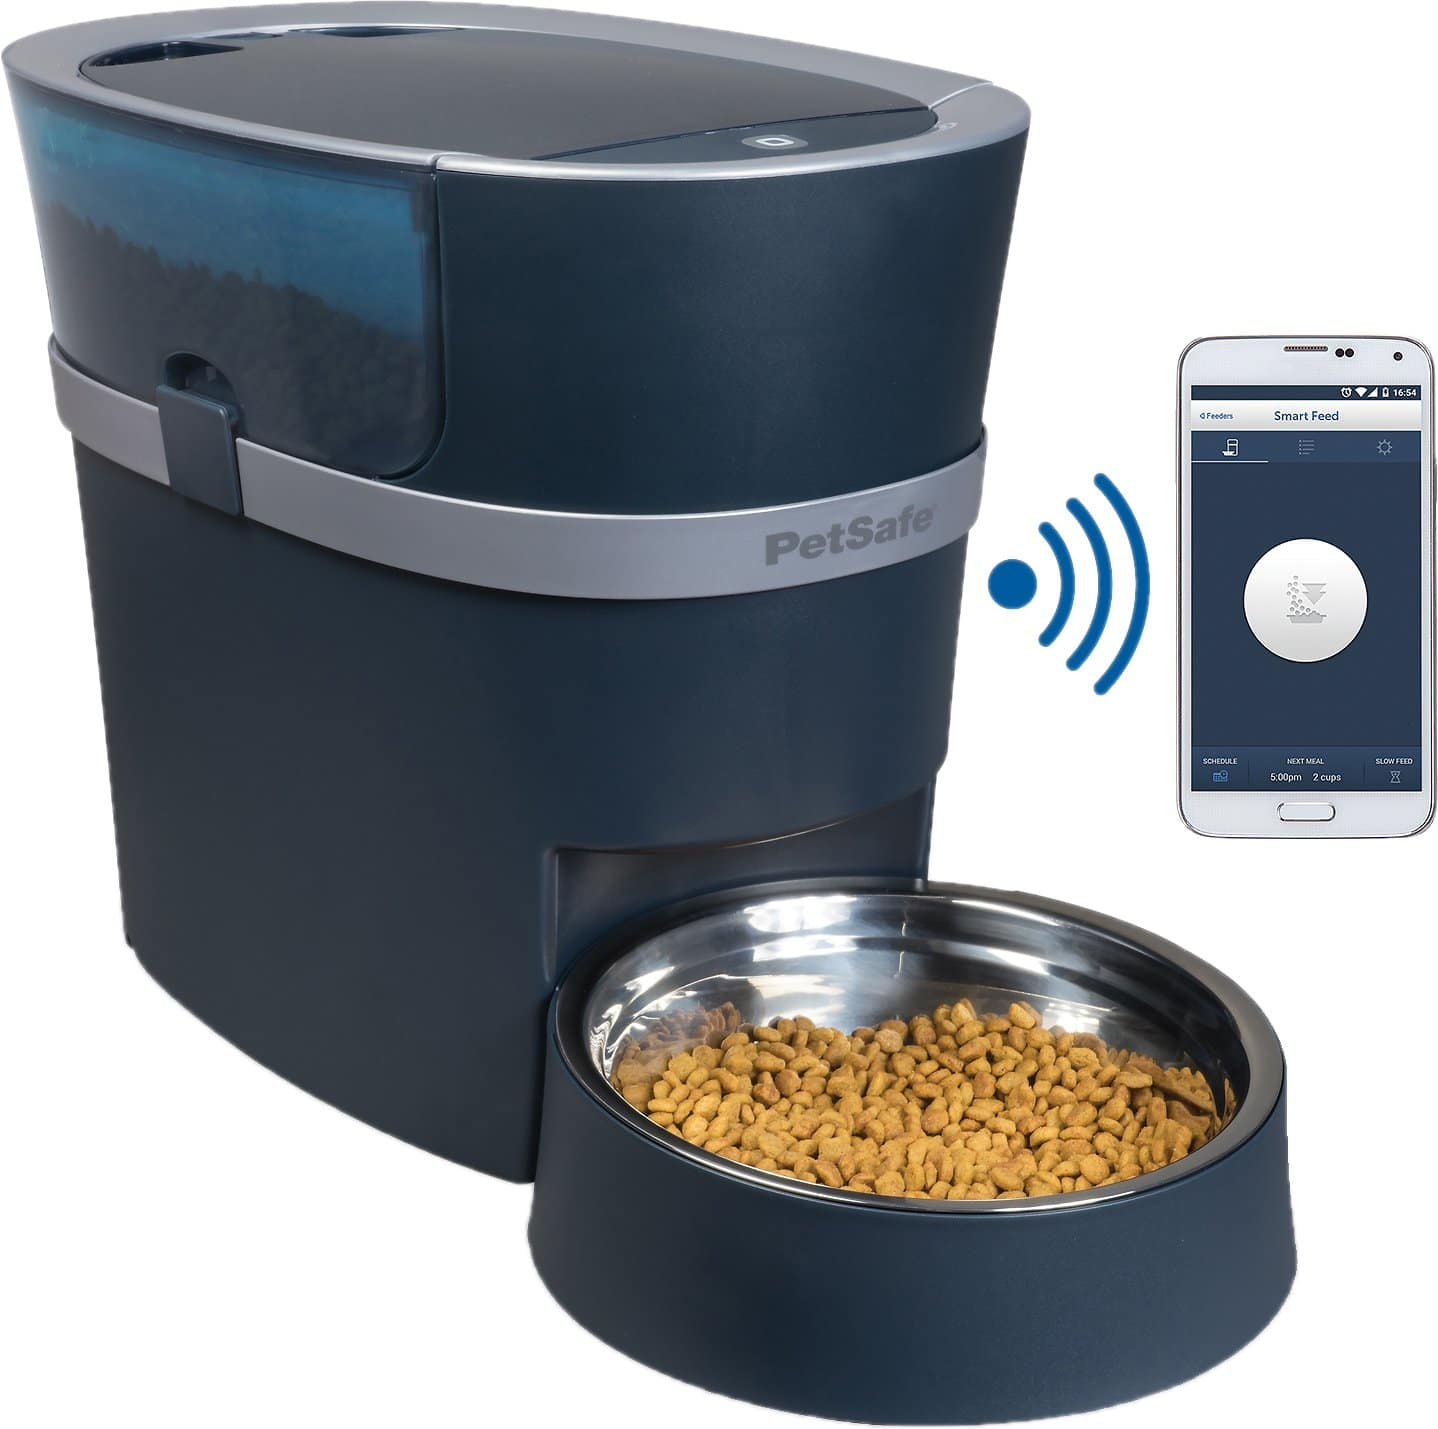 New Chewy Autoship Customers: PetSafe Smart Feed Automatic Pet Feeder for iPhone & Android $101.66 + free shipping